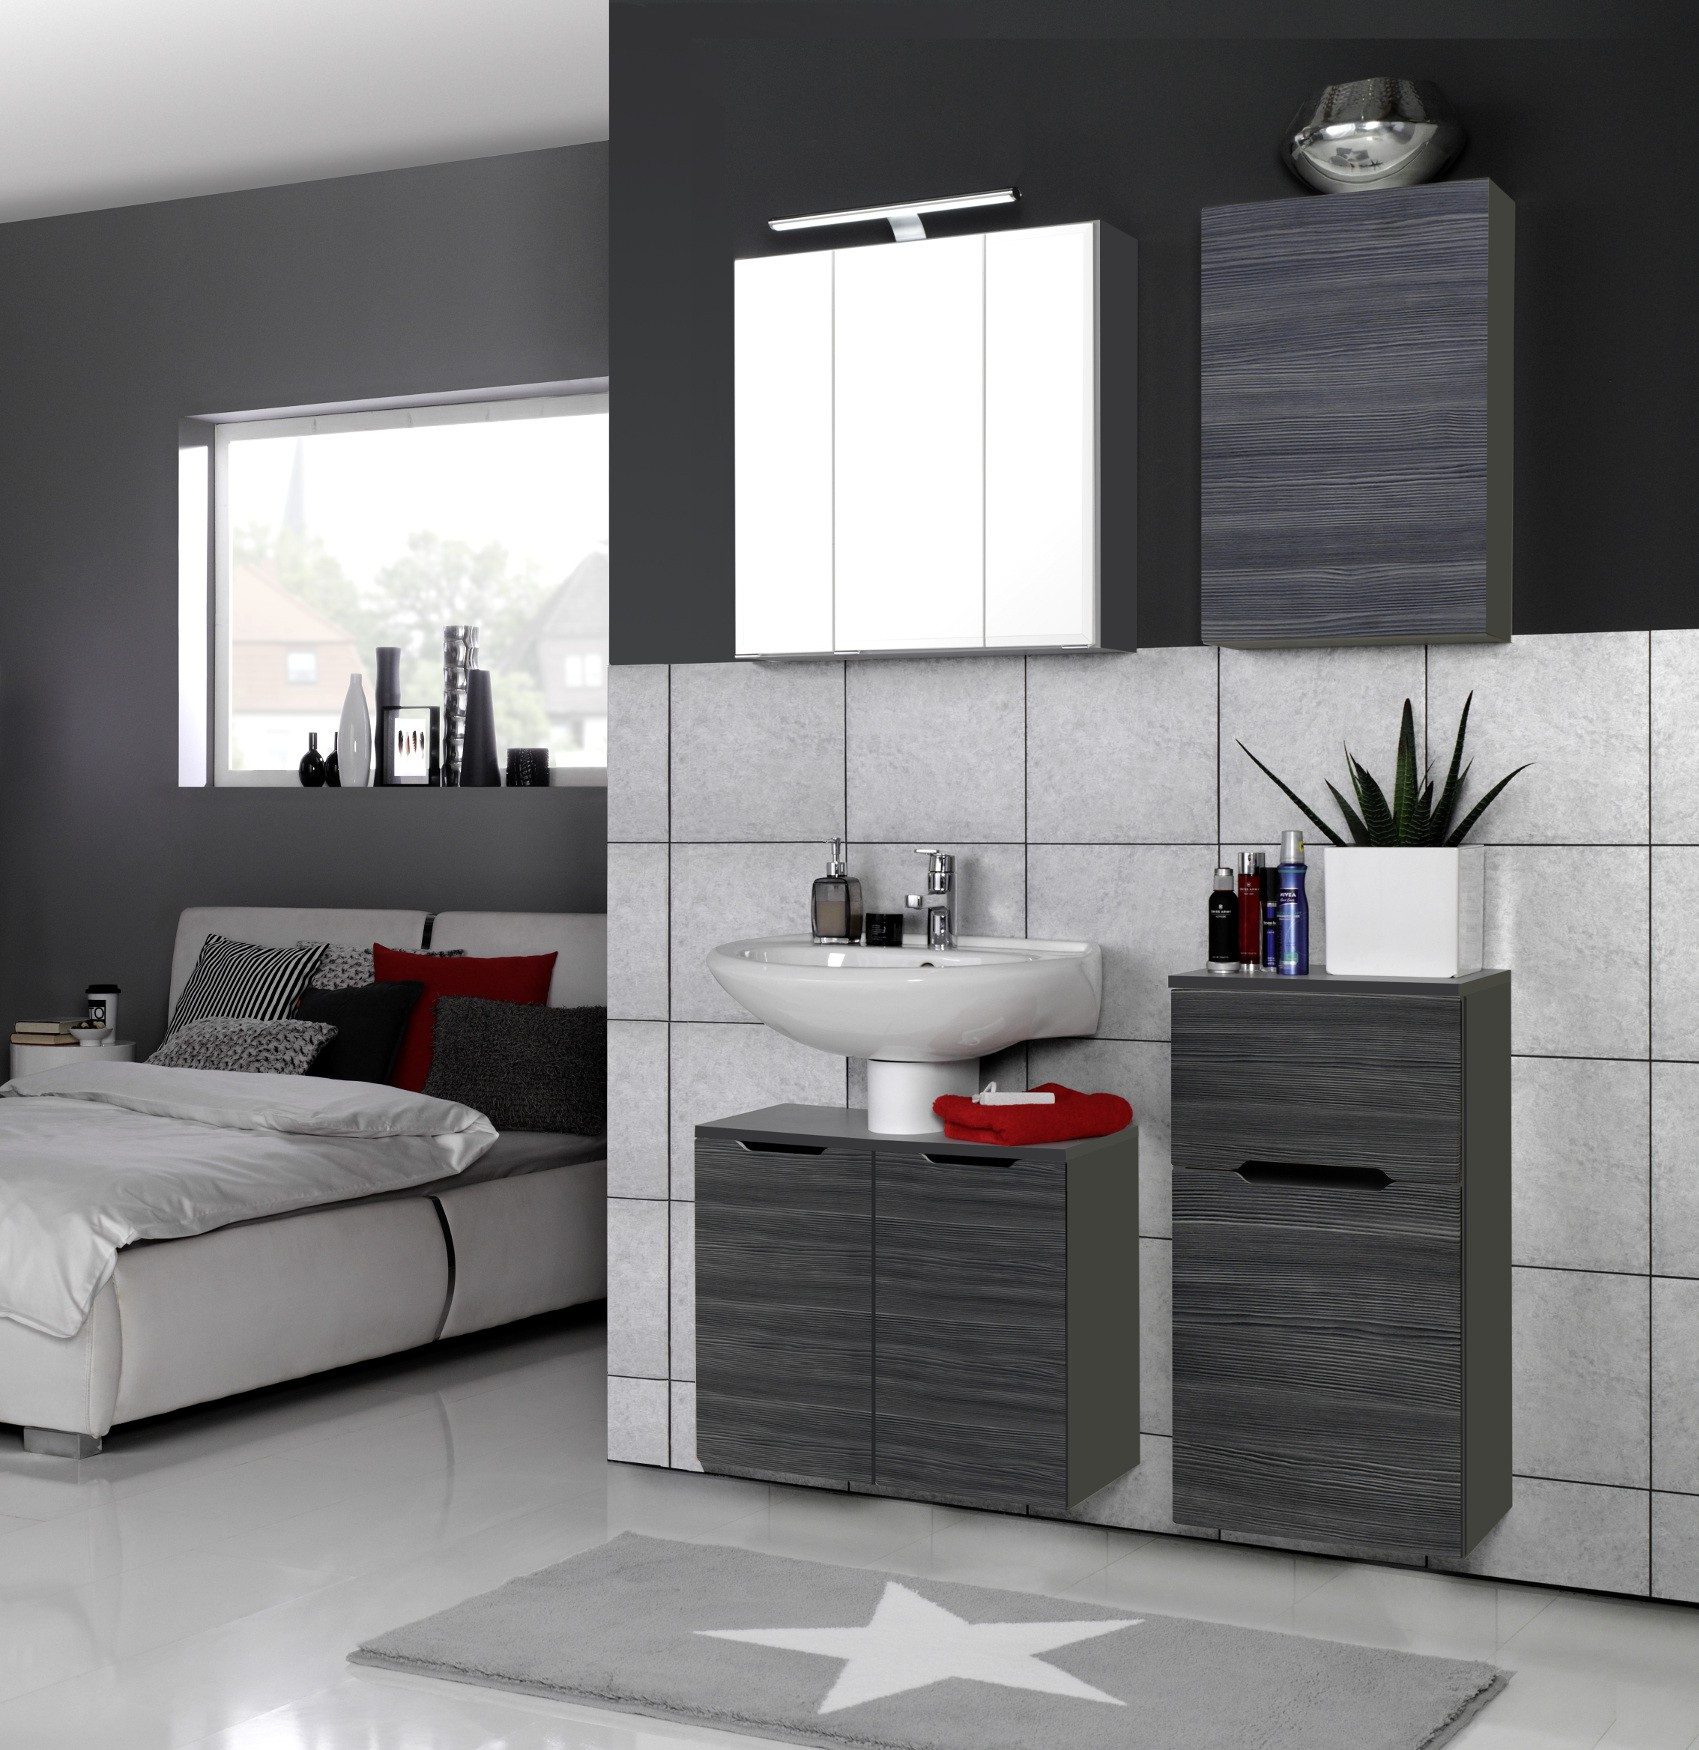 badm bel set belluno 5 teilig 100 cm breit l rche anthrazit mit echtholzstruktur bad. Black Bedroom Furniture Sets. Home Design Ideas